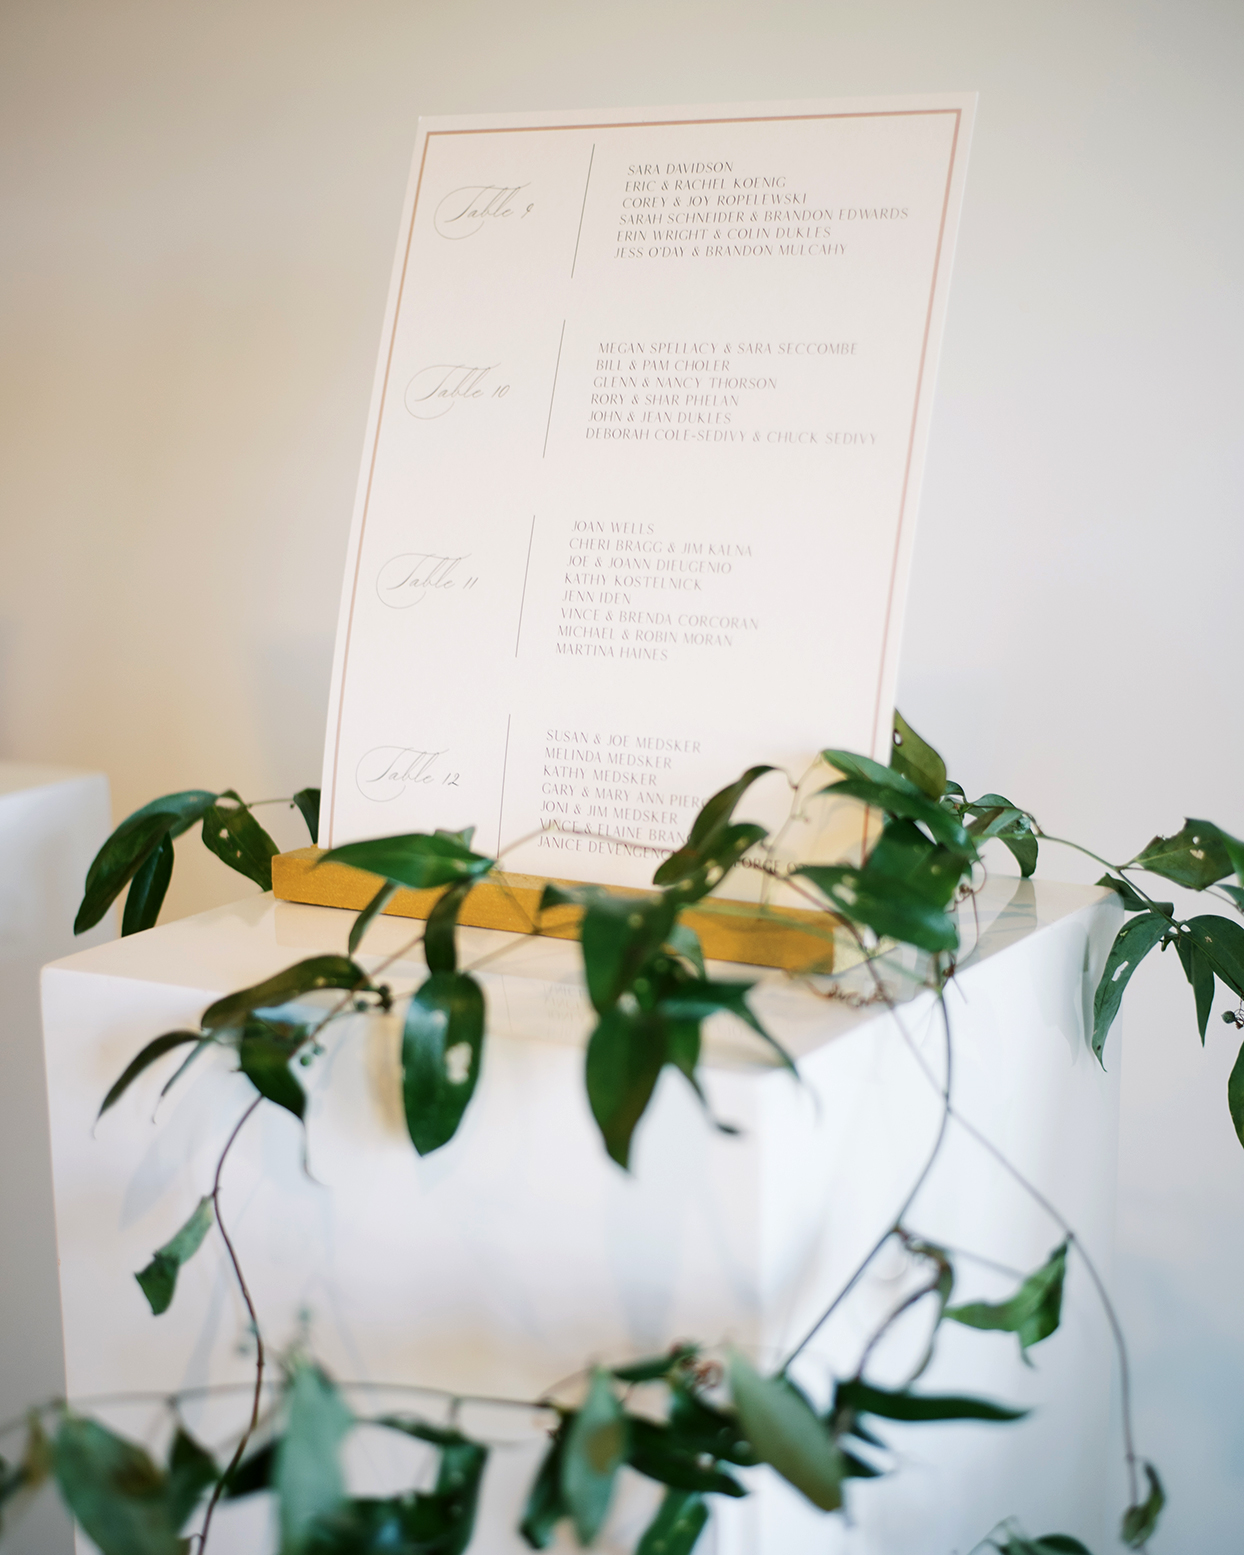 Guest table assignments on white columns draped in dark green leaves and flowing vines